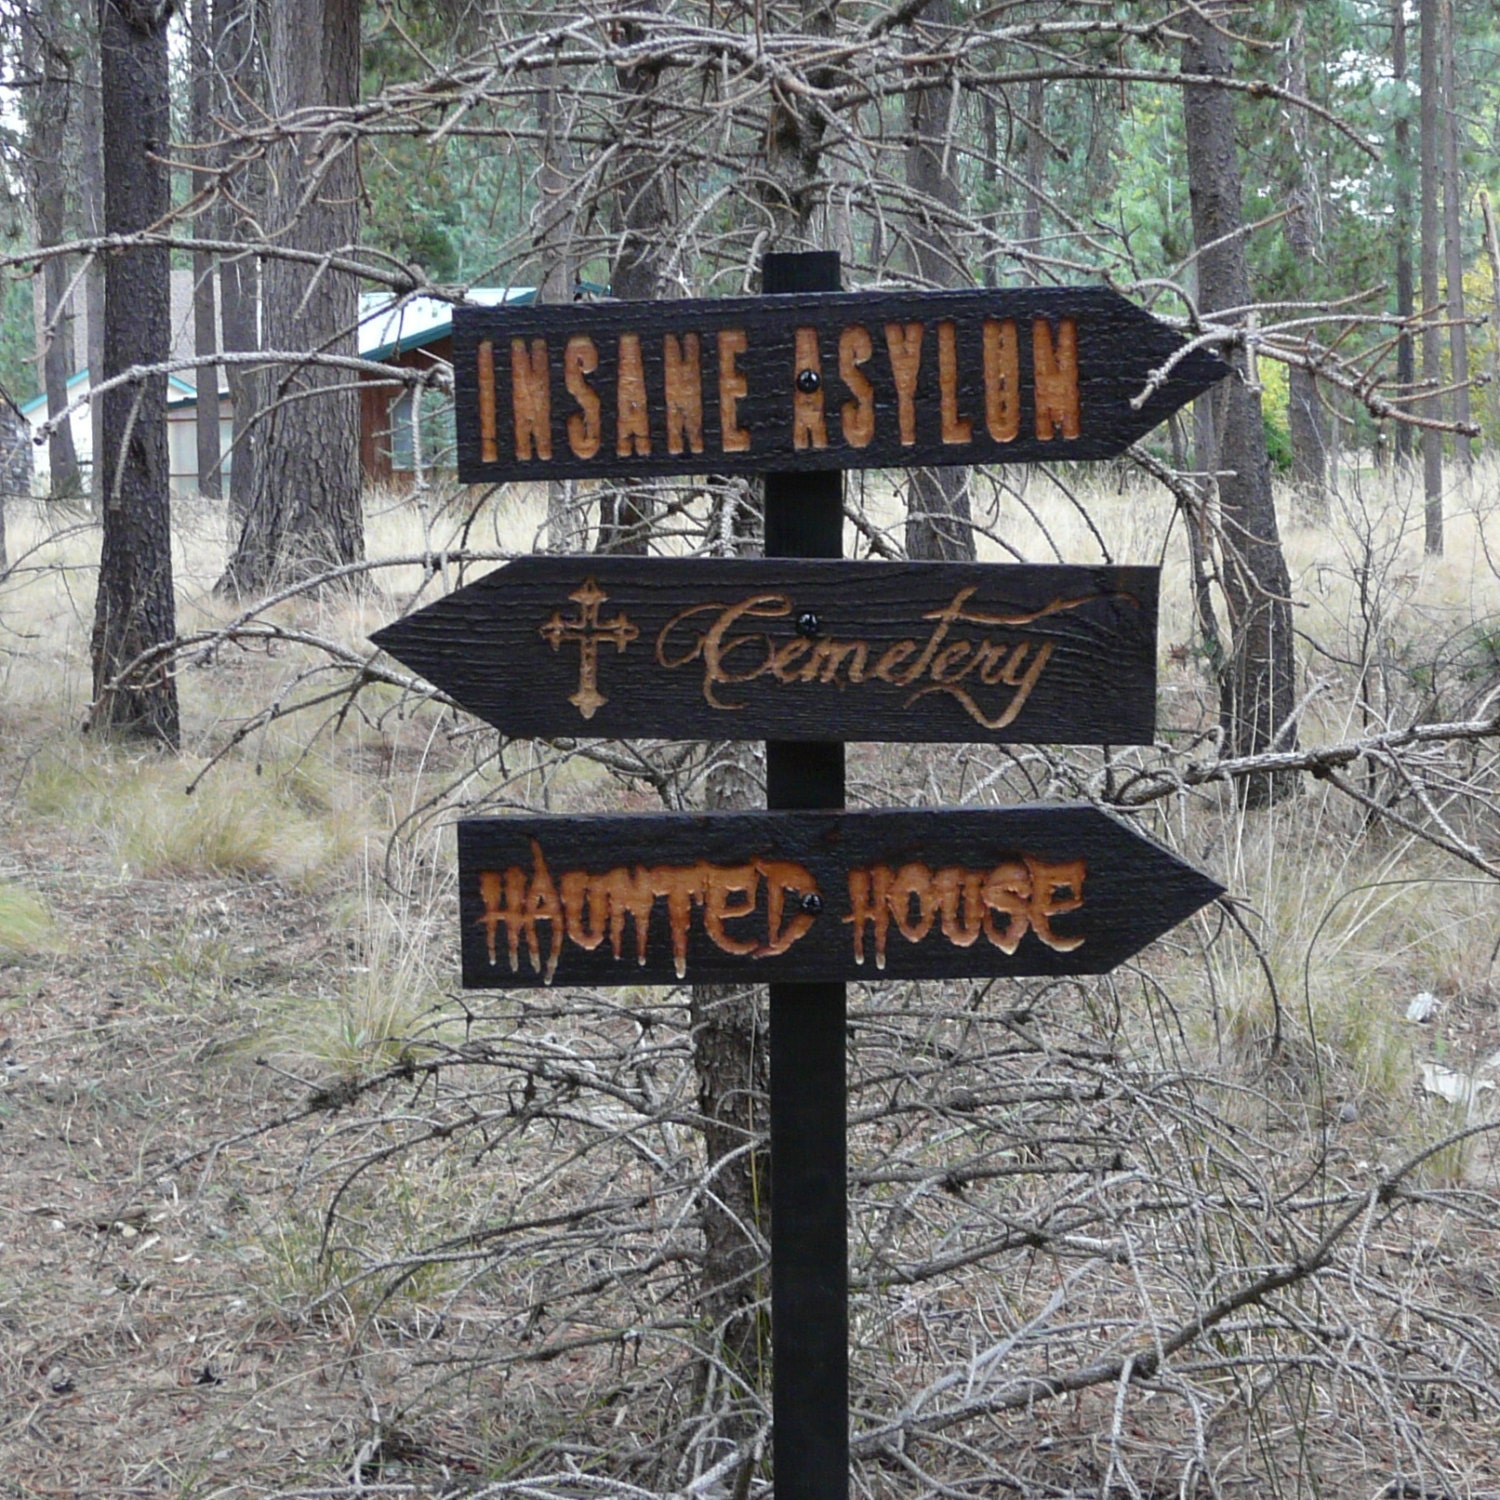 decisions 3 halloween lawn ornament sign haunted house cemetery insane asylum creepy scary horror decoration cedar wood holiday decor - Cemetery Halloween Decorations